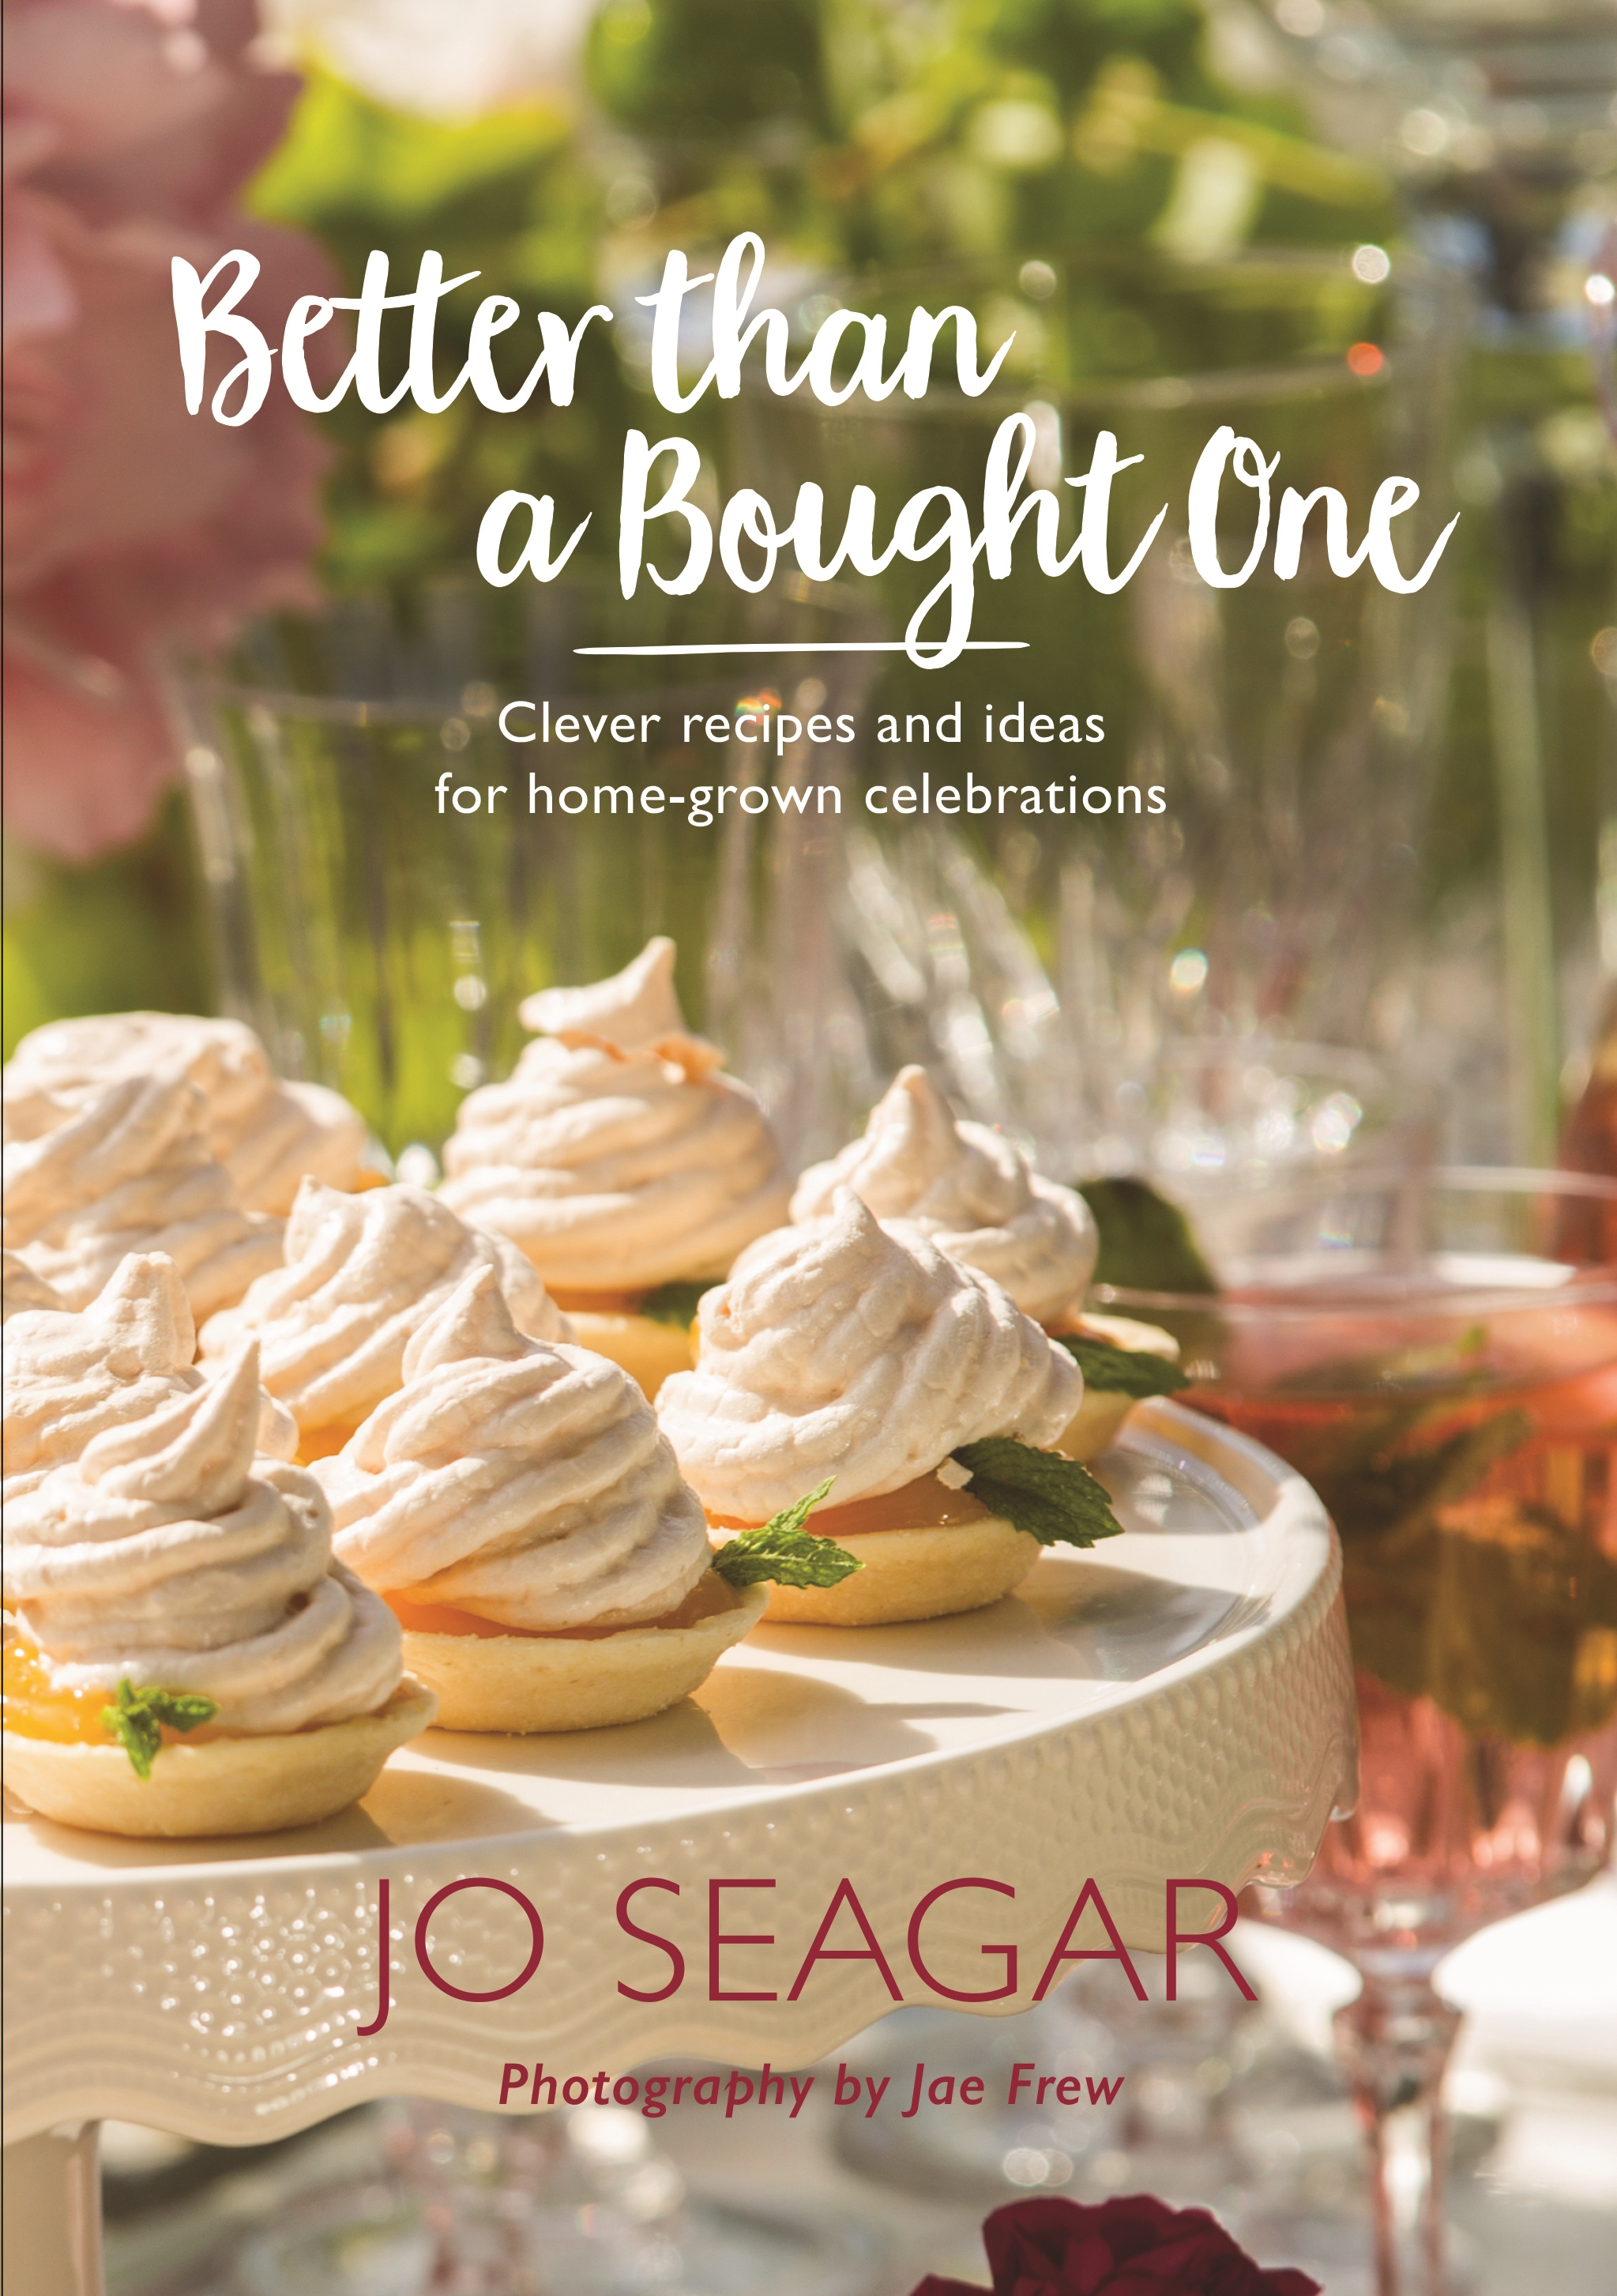 better than a bought one by jo seagar penguin books new zealand